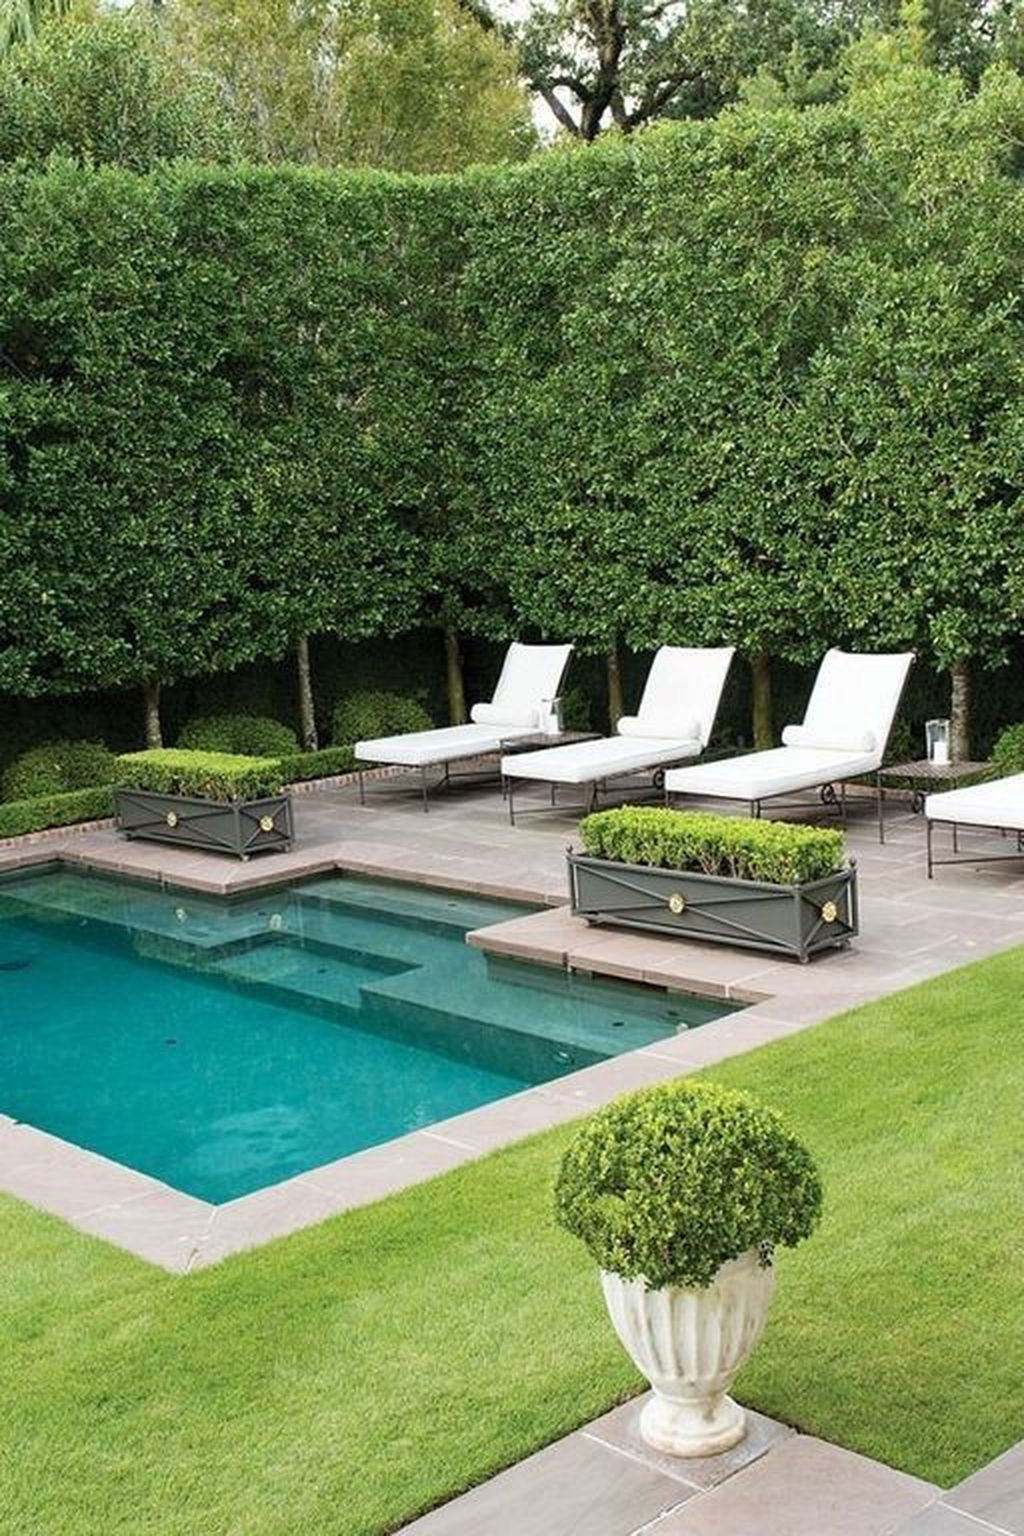 Top Tips For Outdoor Living Beth Lindsey Interior Design Pool Patio Furniture Small Pool Design Swimming Pools Backyard